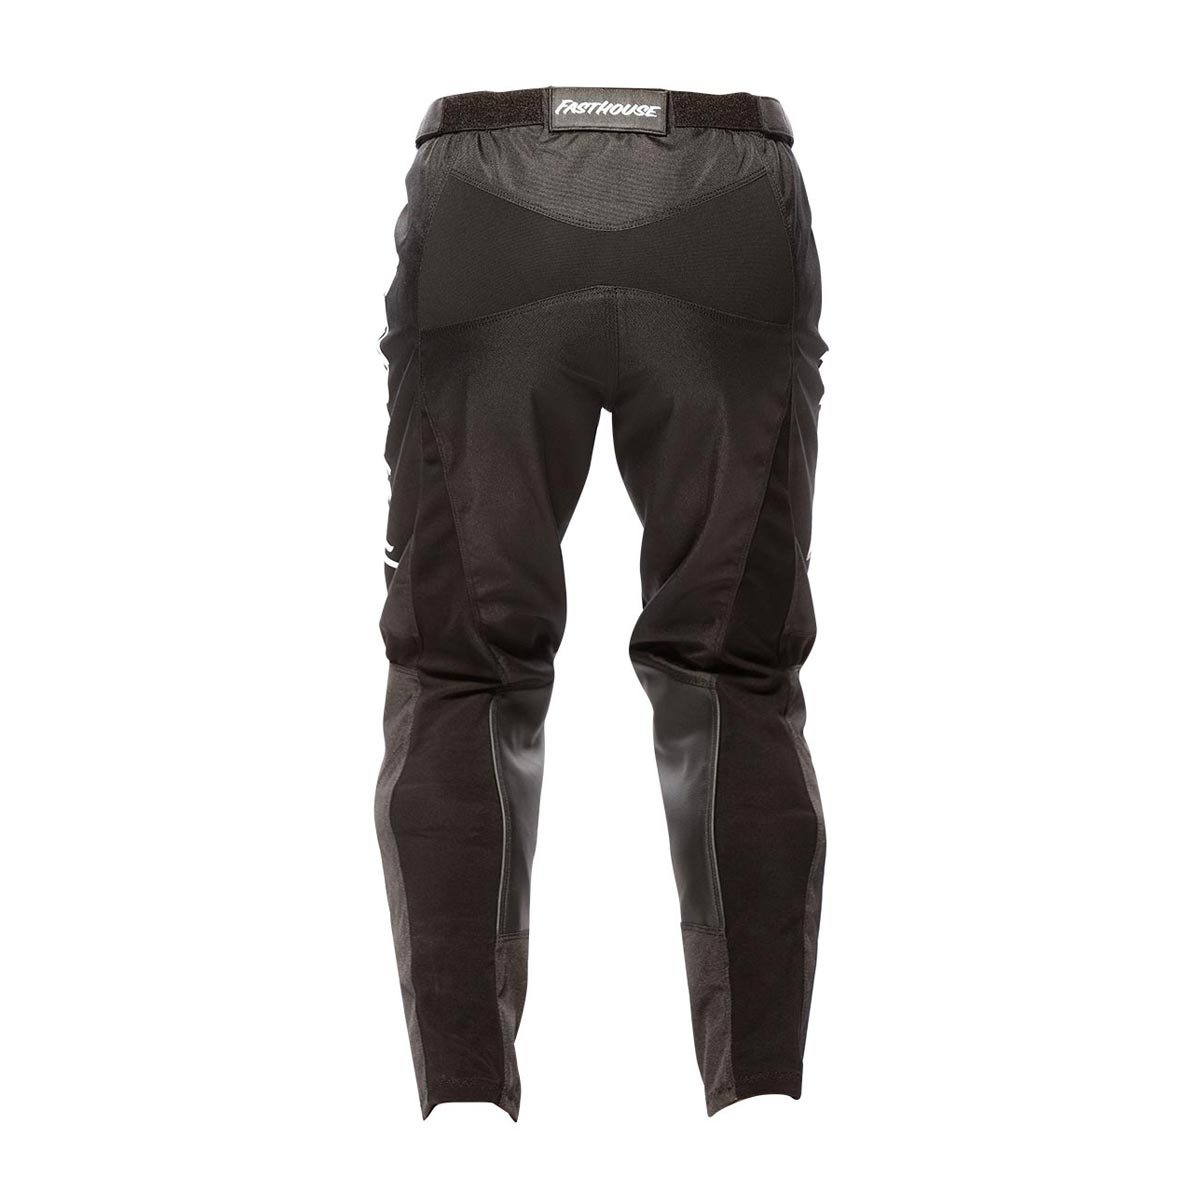 Carbon Youth Pant - Black